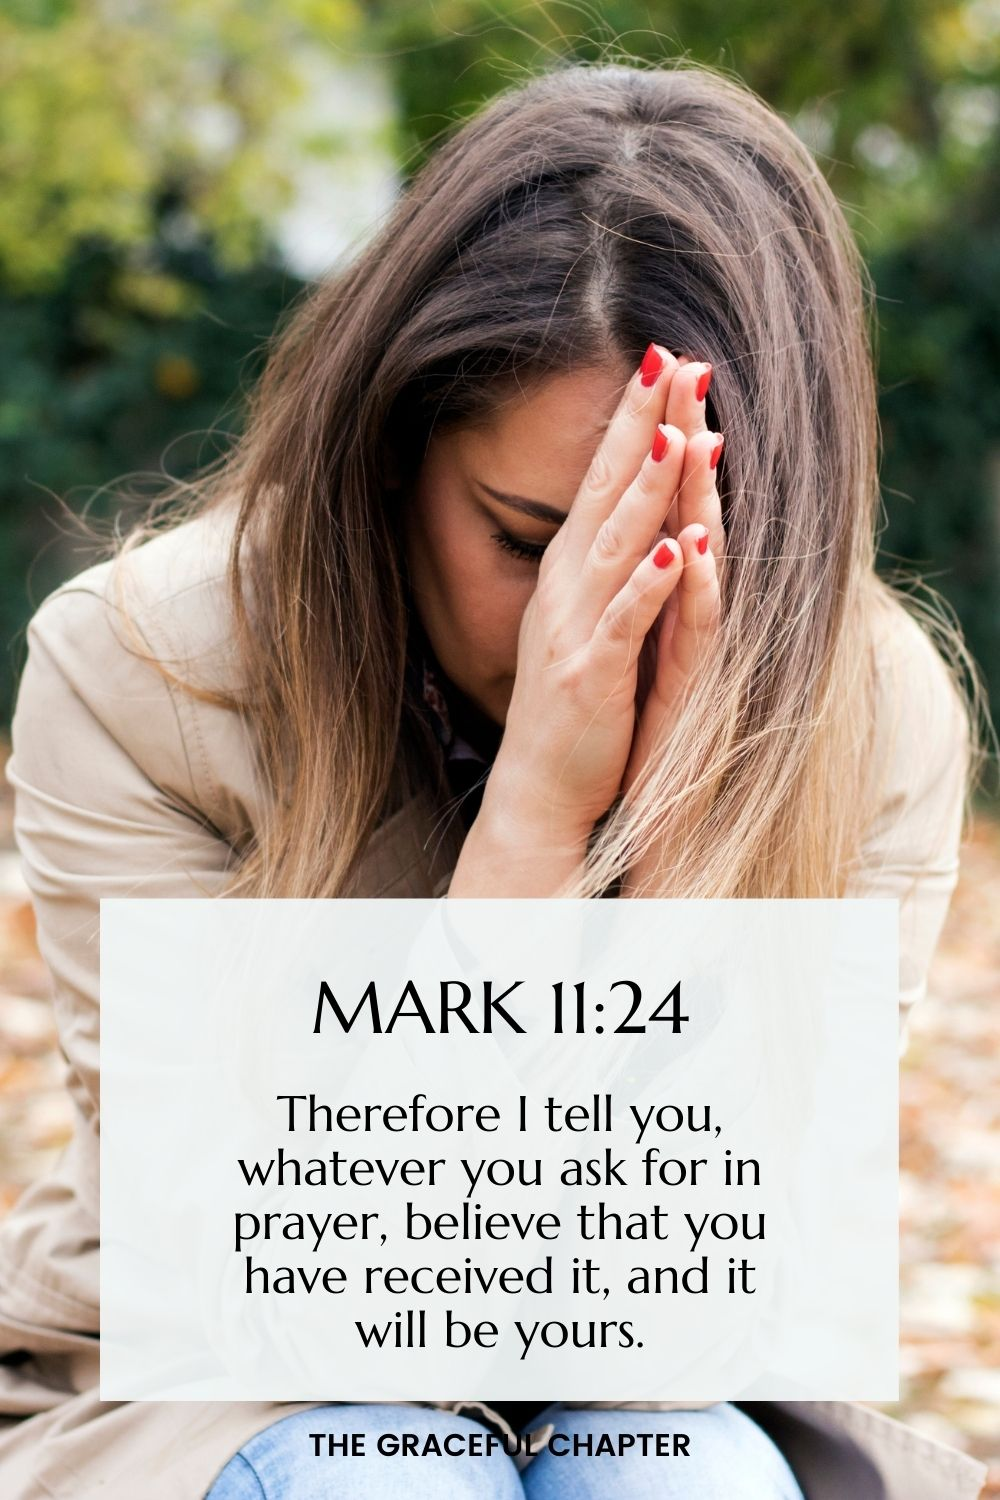 Therefore I tell you, whatever you ask for in prayer, believe that you have received it, and it will be yours. Mark 11:24